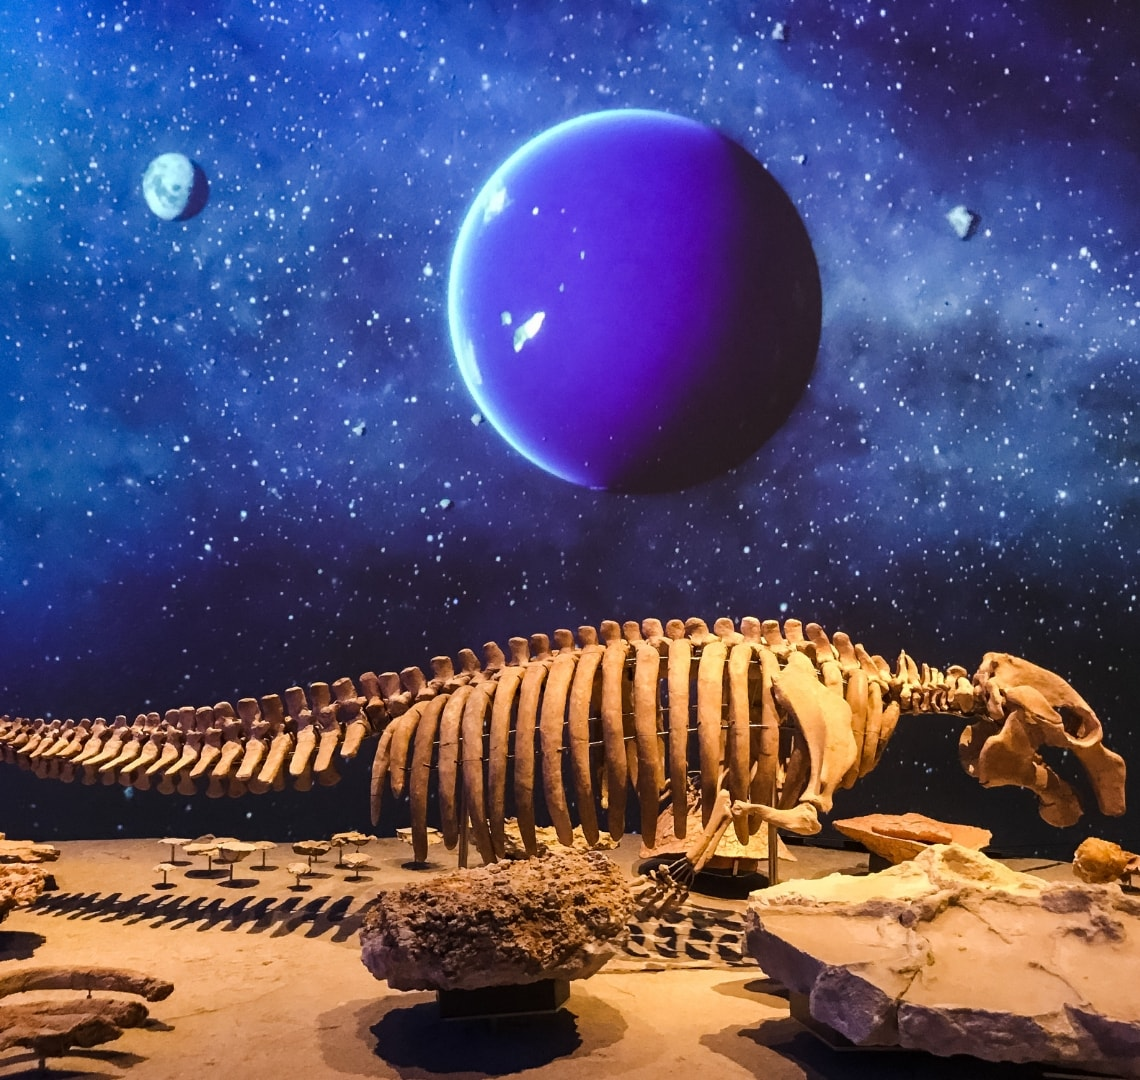 National Museum of Qatar - A dugong skeleton in front of an impressive digital visual display